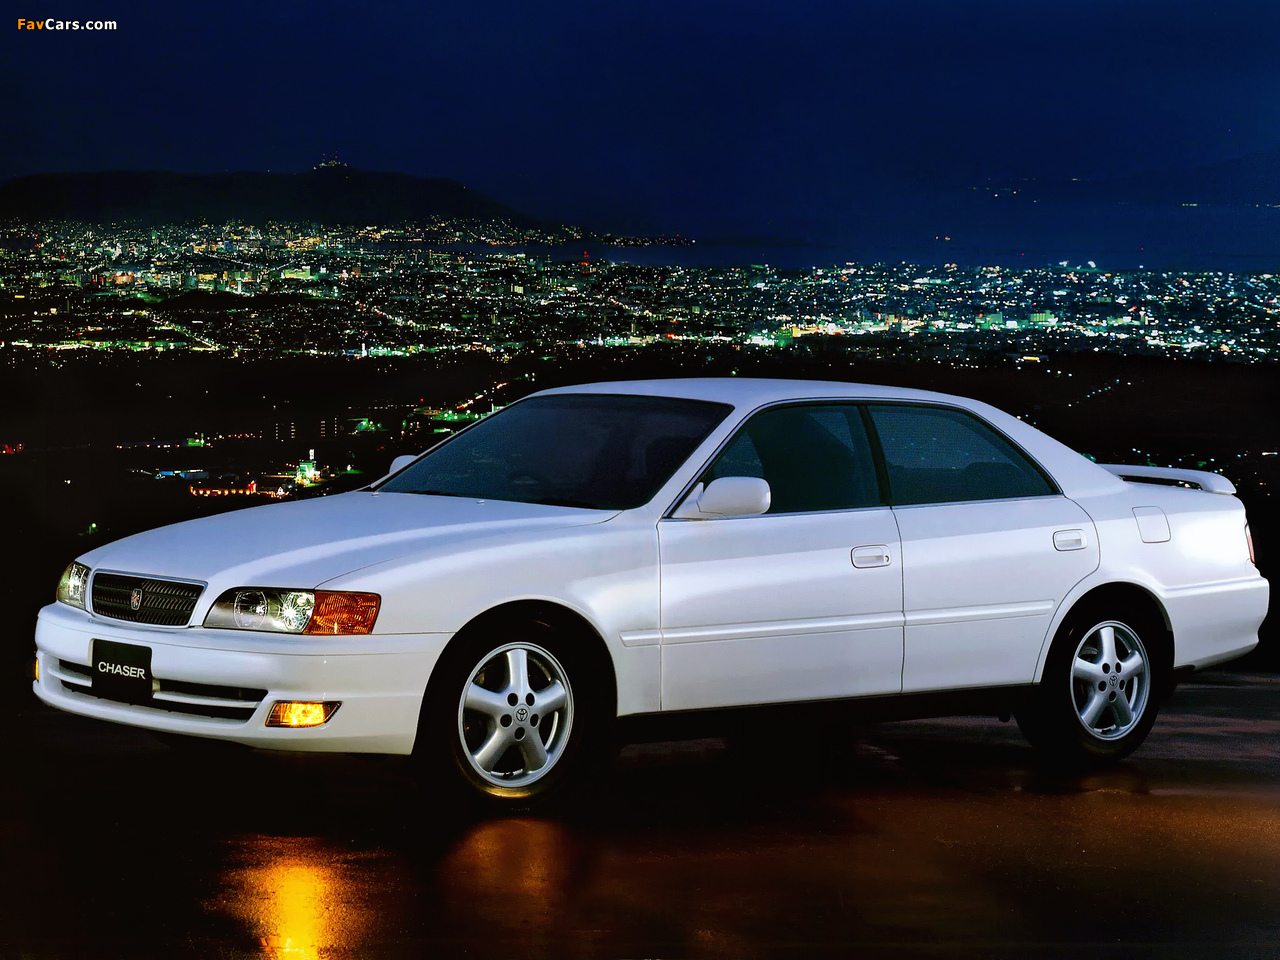 Toyota Chaser Tourer V Jzx100 1998 2001 Wallpapers